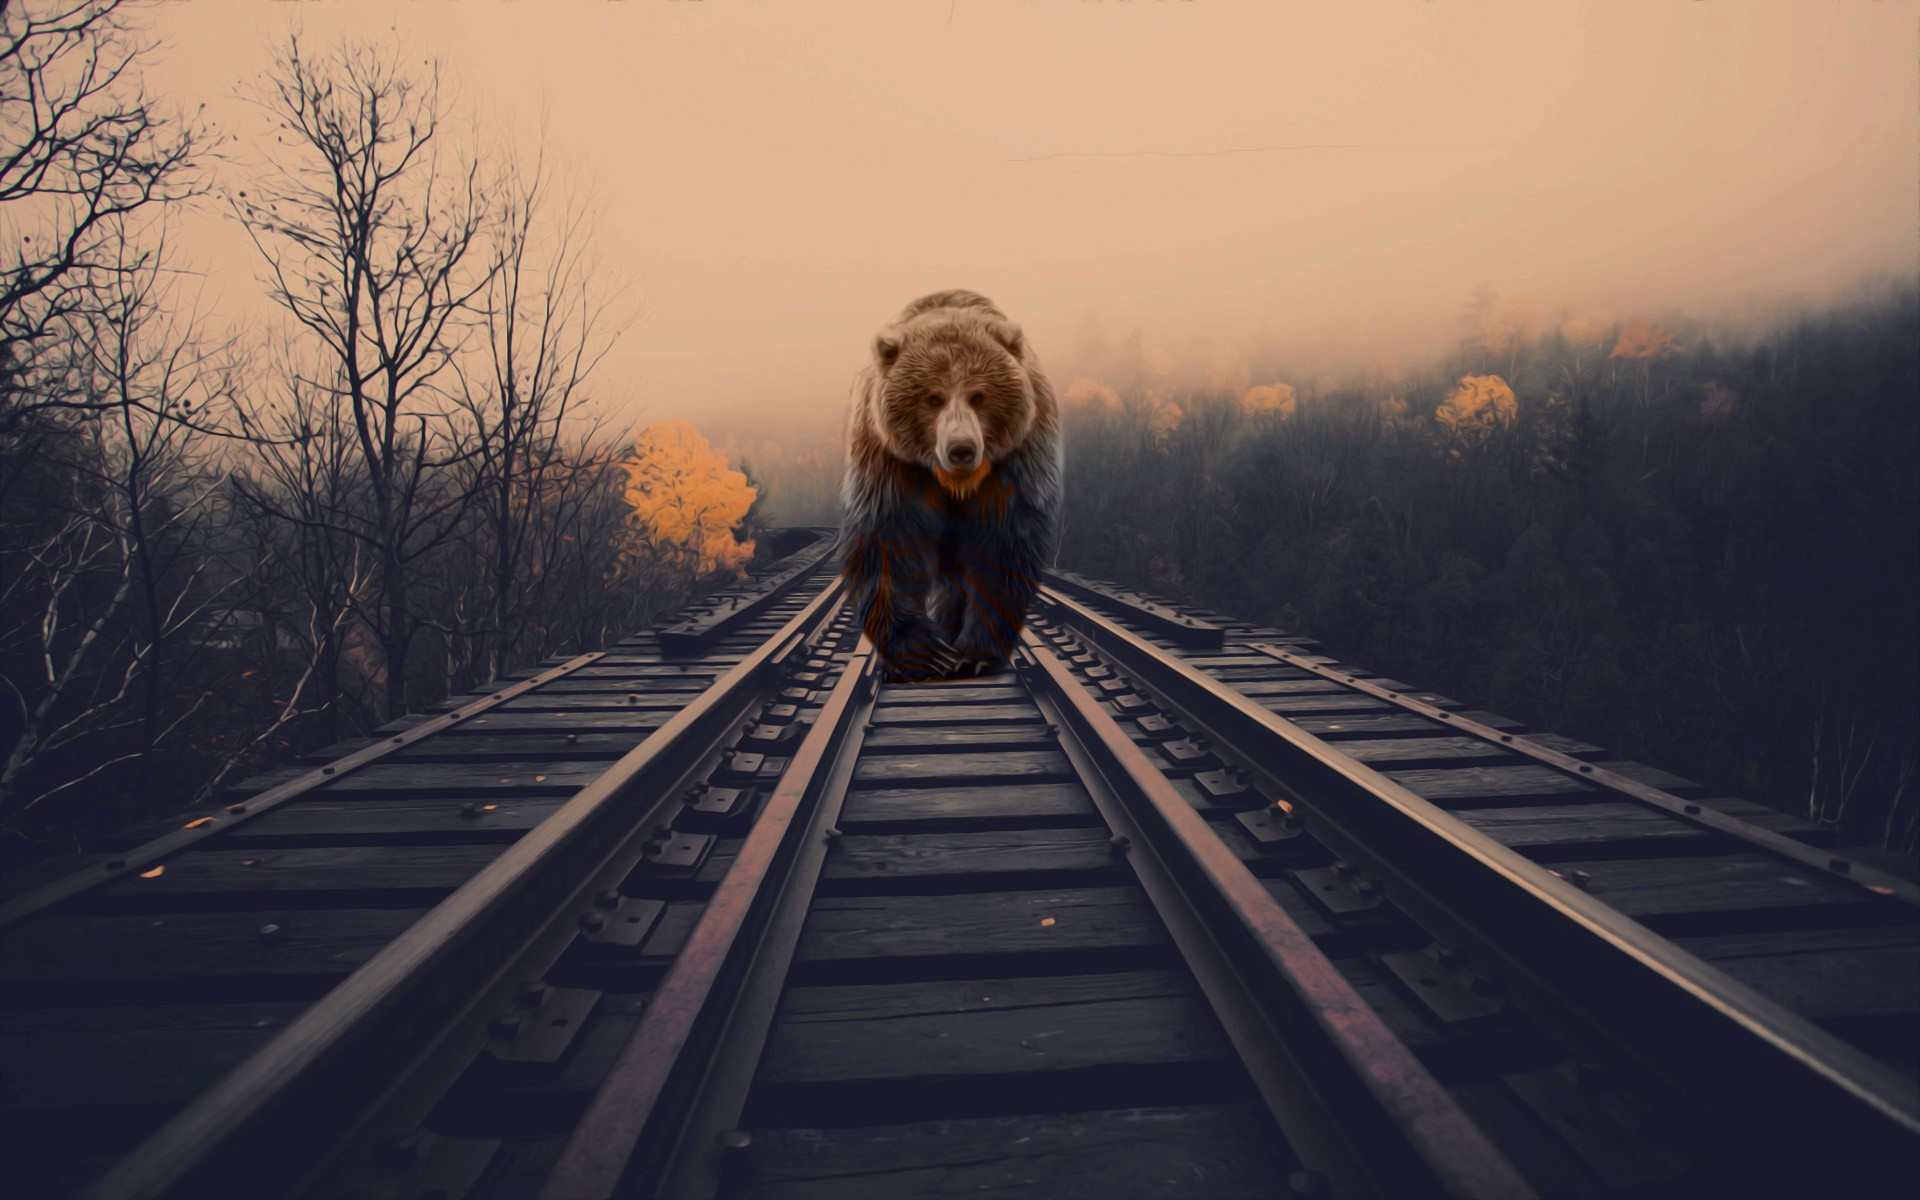 3d Wallpapers For Home Screen Bears Nature Animals Photo Manipulation Railway